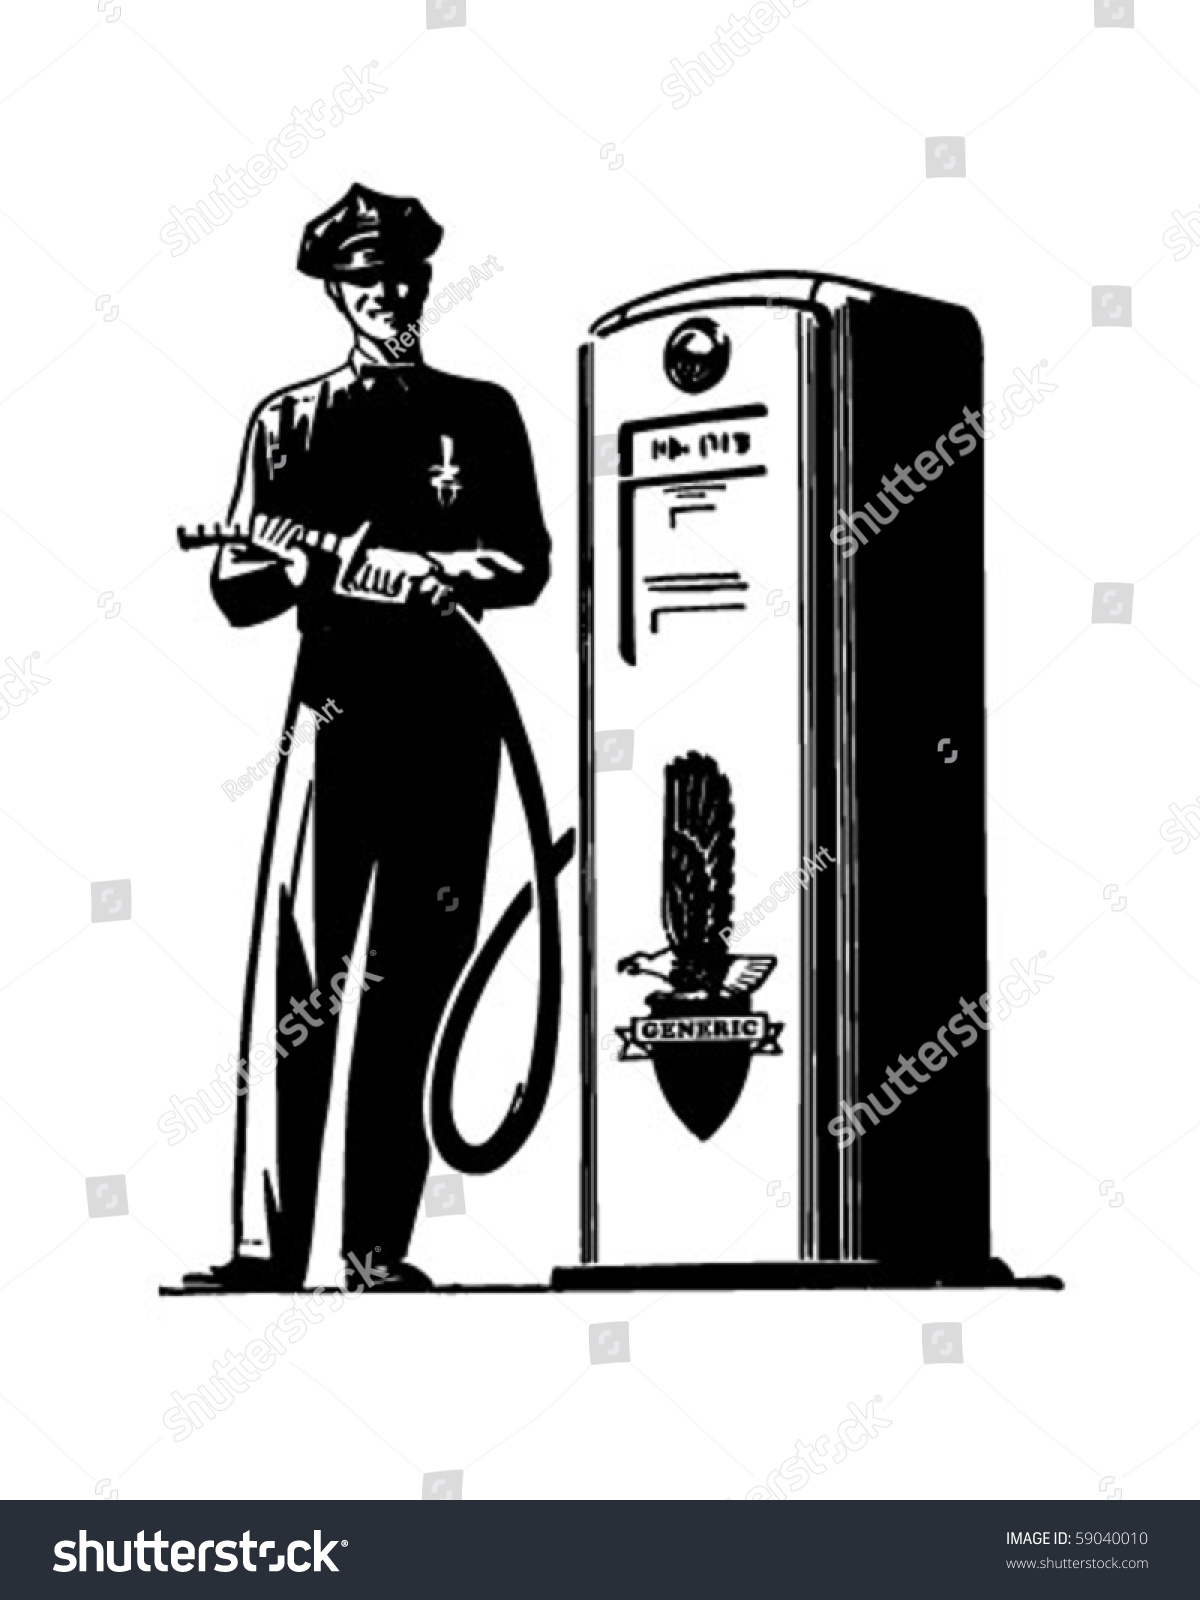 Gas Pump Attendant Retro Clip Art Stock Vector 59040010 - Shutterstock